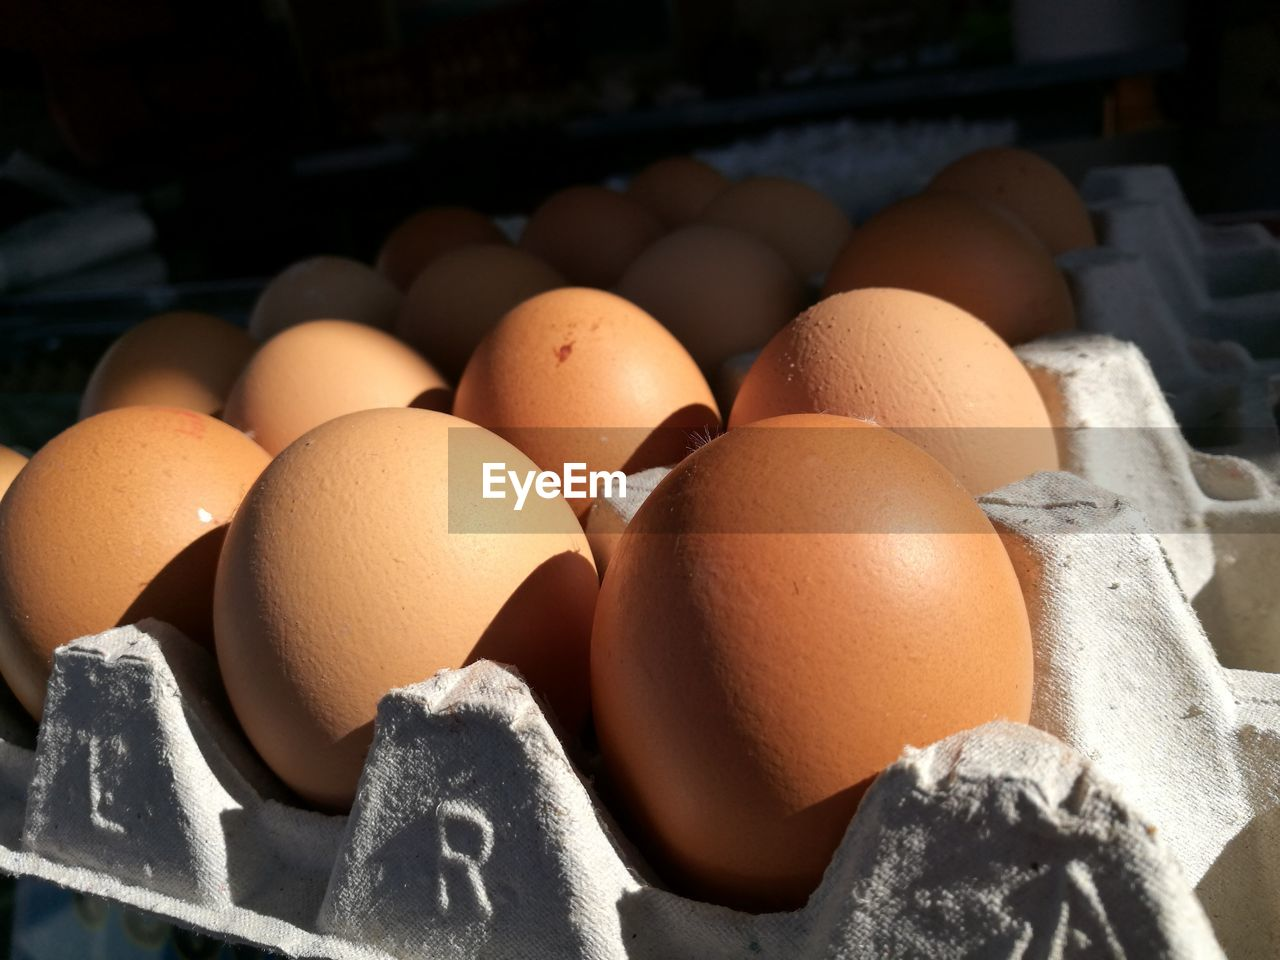 egg, food and drink, wellbeing, food, healthy eating, egg carton, freshness, brown, no people, close-up, still life, raw food, large group of objects, focus on foreground, indoors, market, crate, fragility, box, container